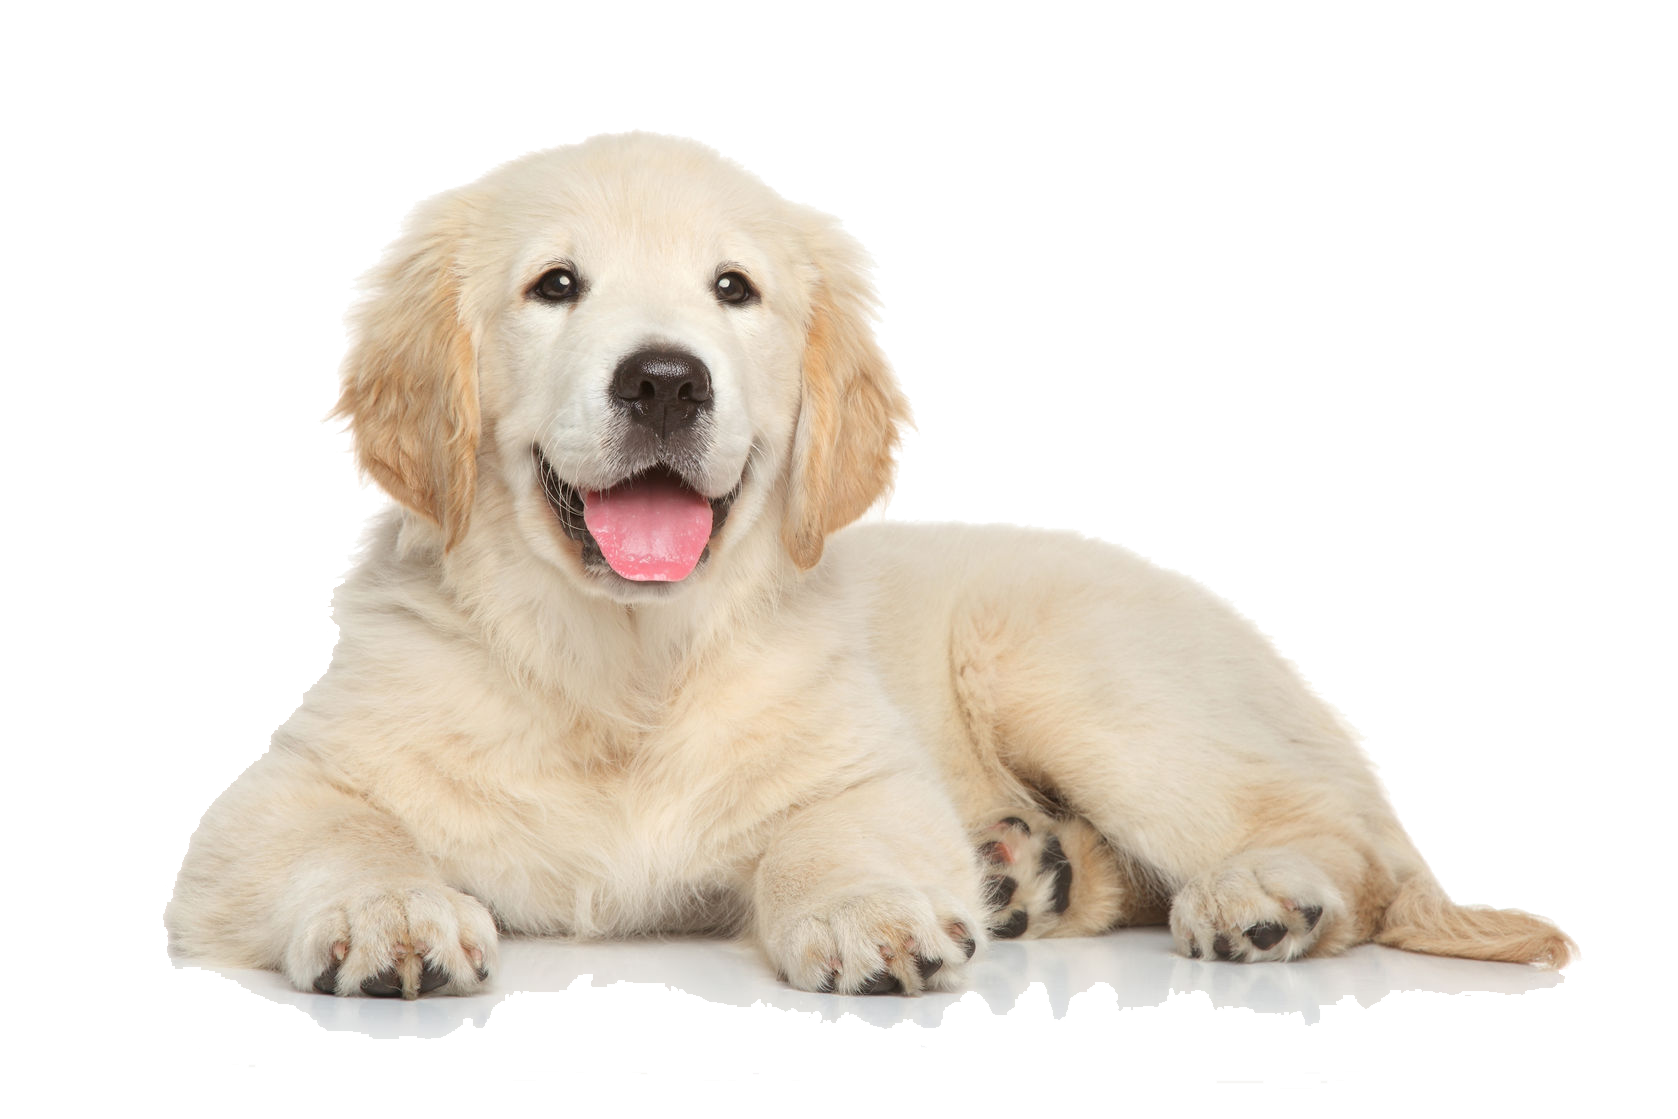 jpg free download Golden retriever clipart. Puppy png file .